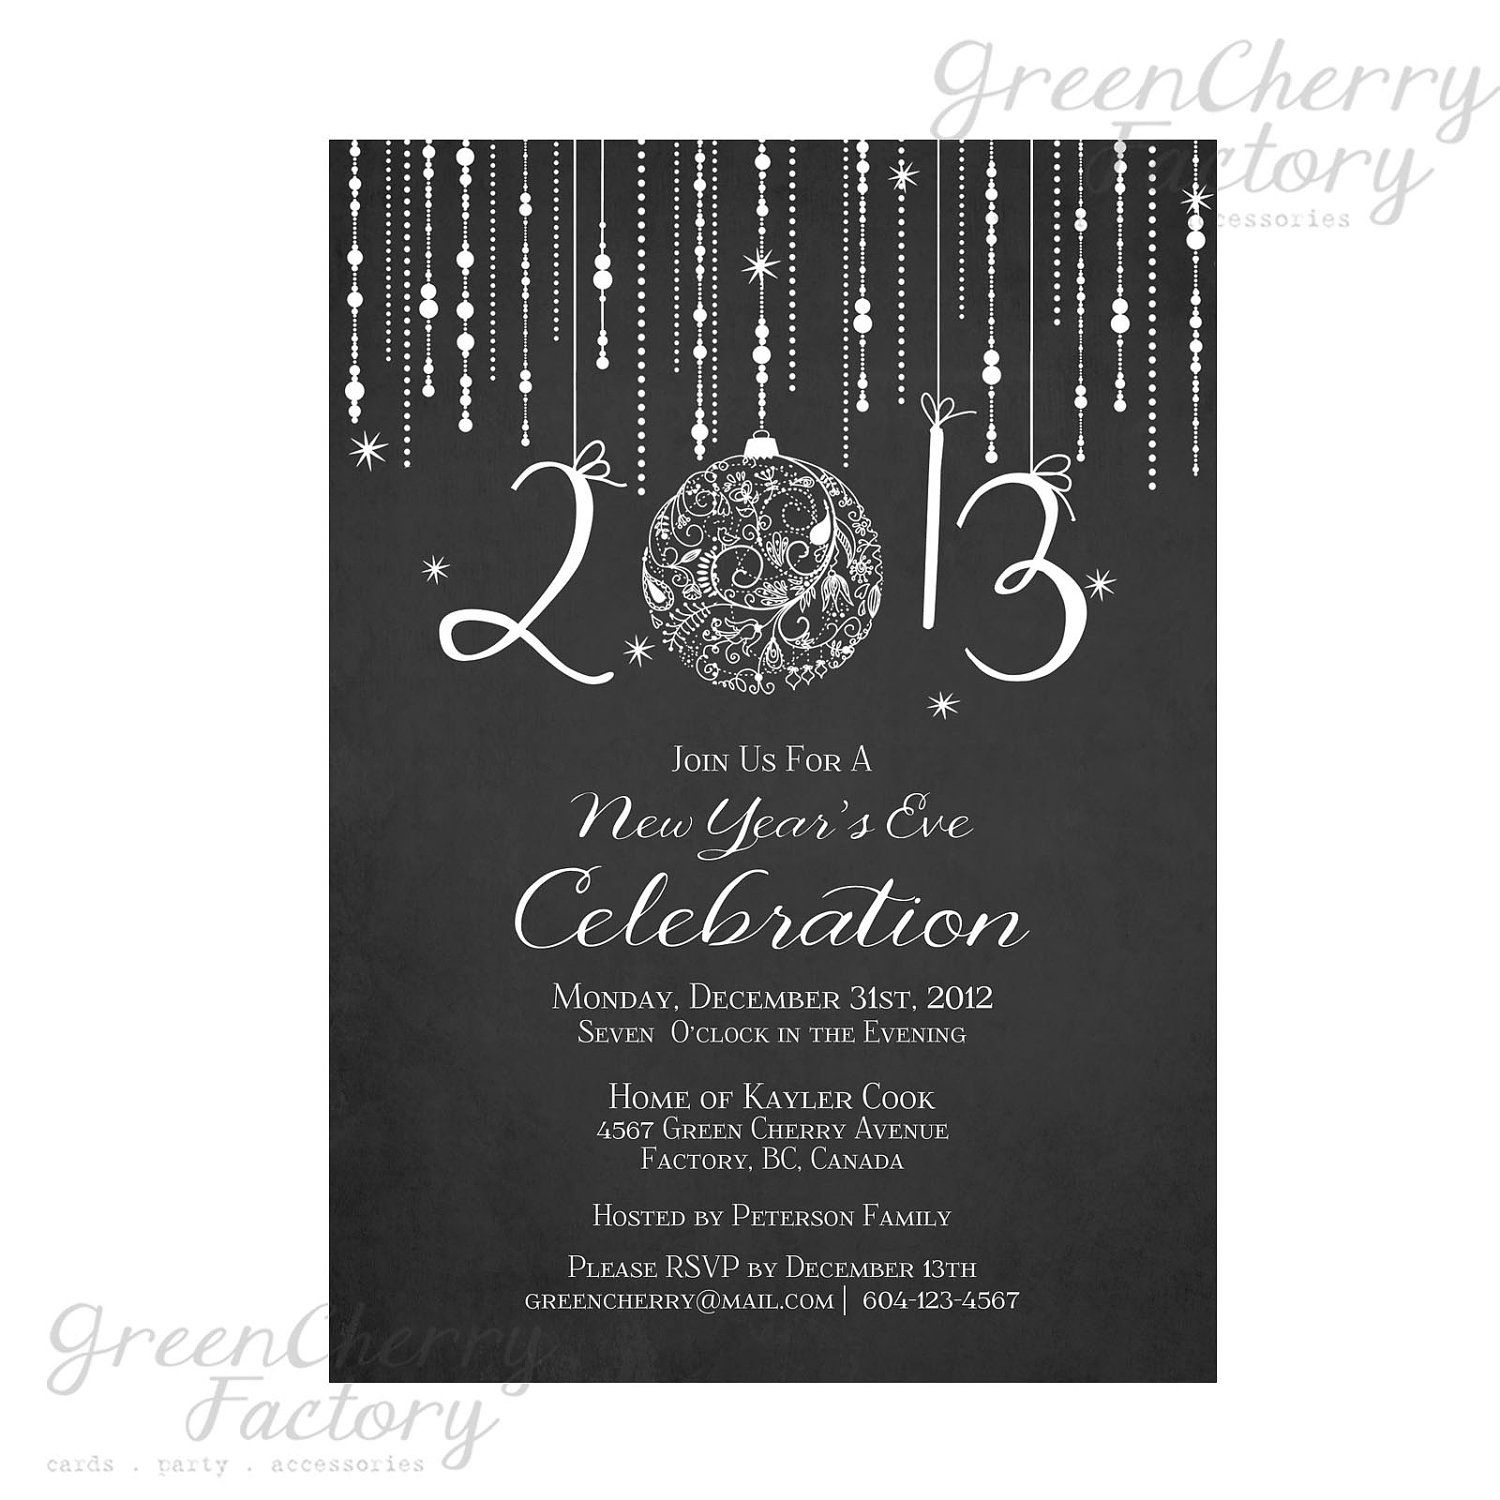 10 Elegant New Years Eve Invitation Ideas printable chalkboard new year invitation elegant new years eve 2020